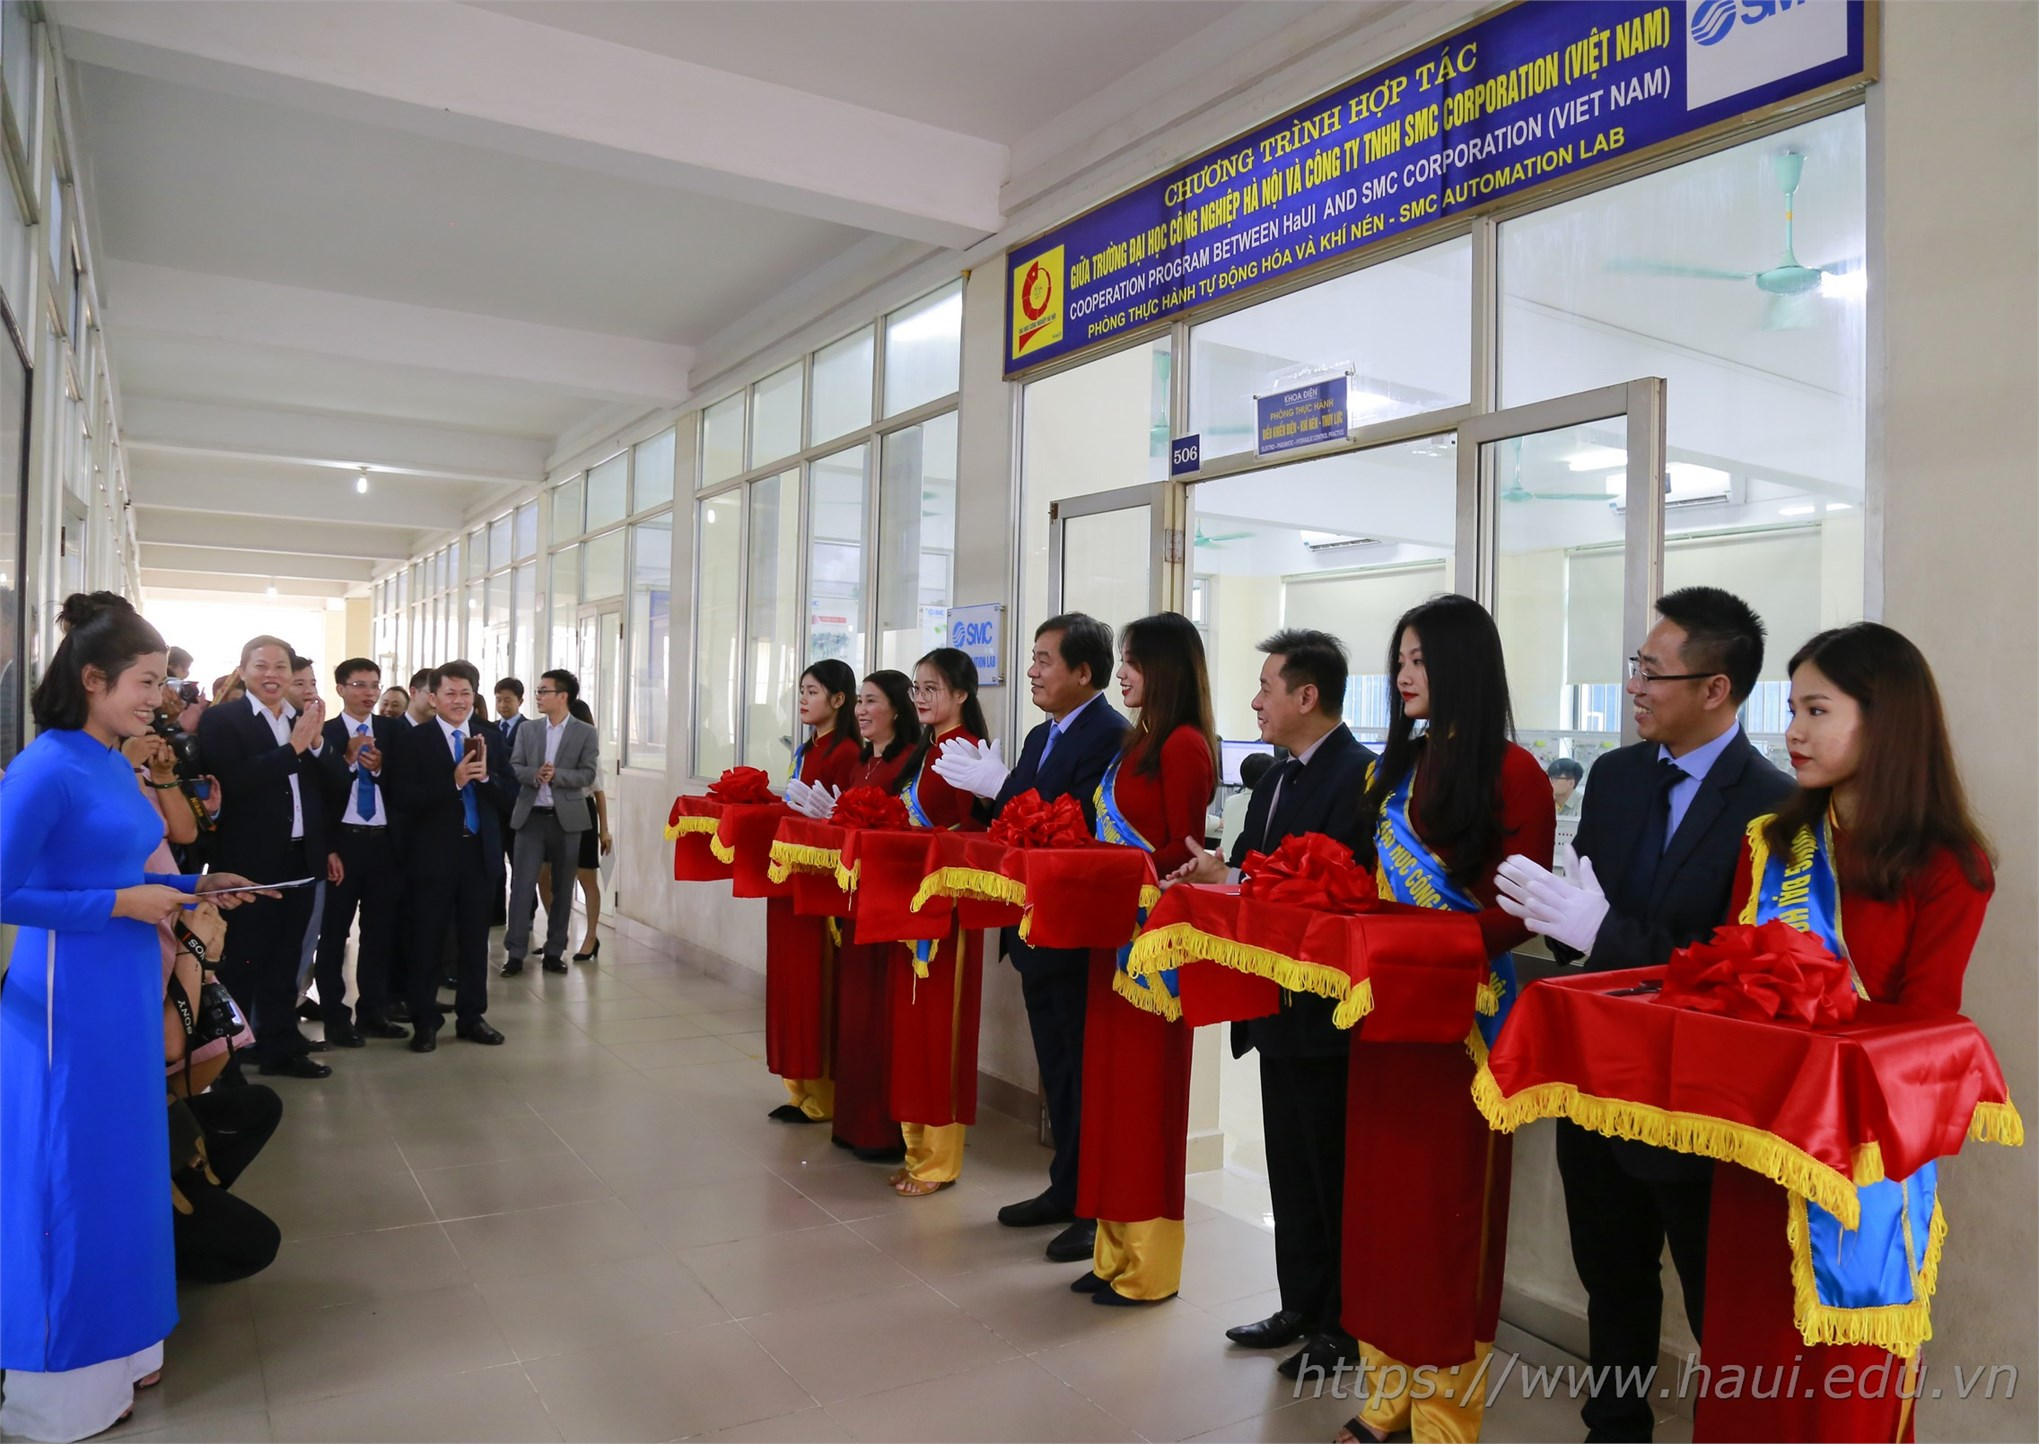 Hanoi University of Industry launch a new SMC Automation Lab worth 2 billion VND